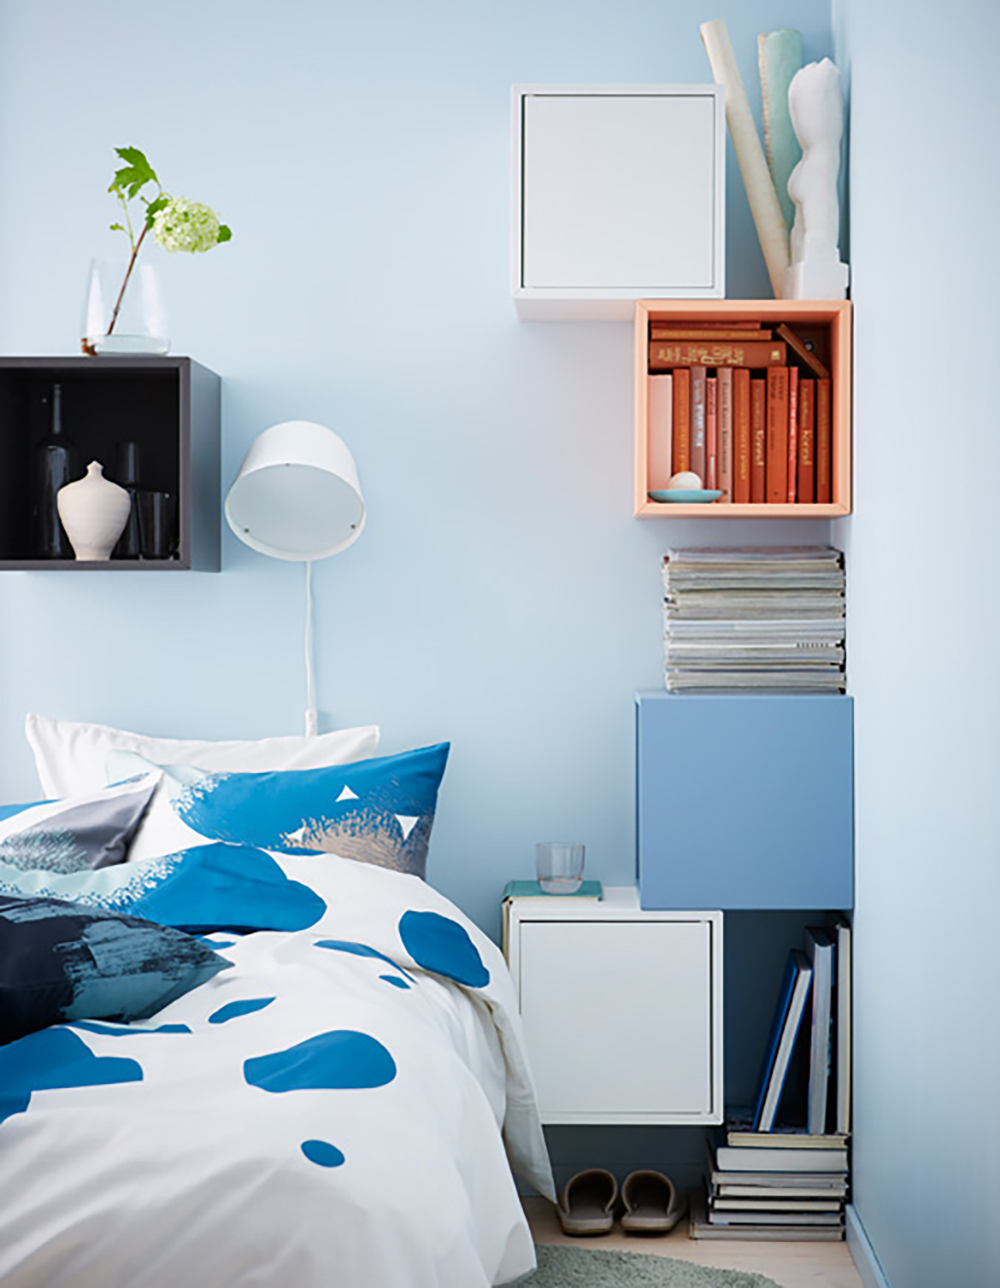 Bright blue bedroom with white, blue and peach IKEA shelves - 35 ideas for blue wall colour in home decoration | Aliz's Wonderland